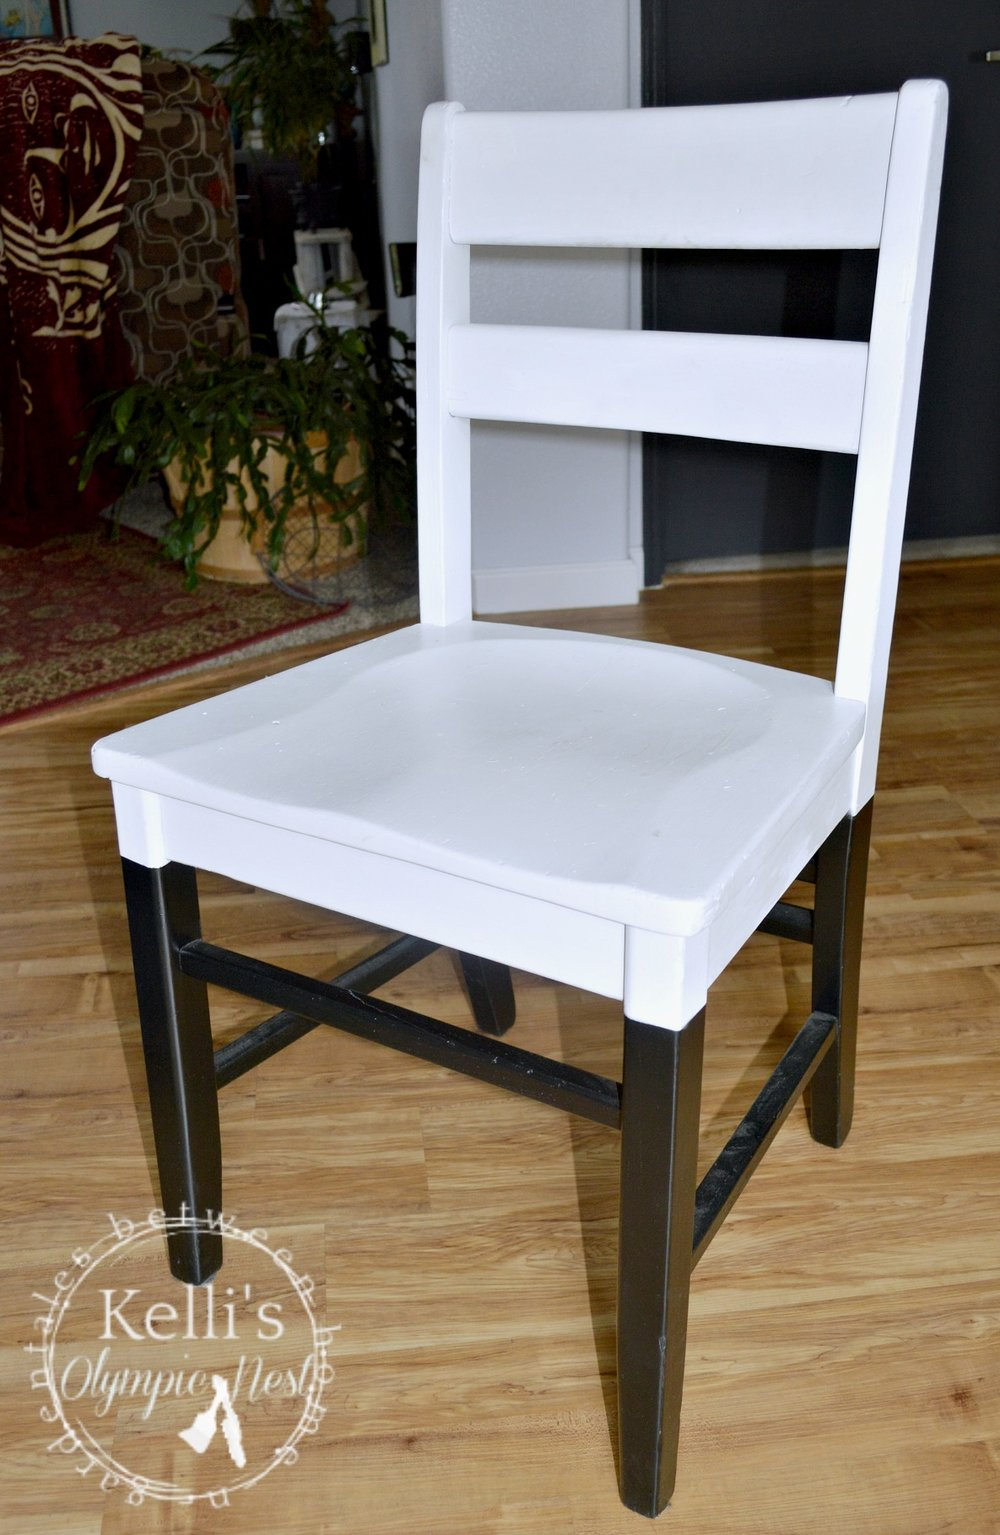 black and white 2 toned painted chair.jpg